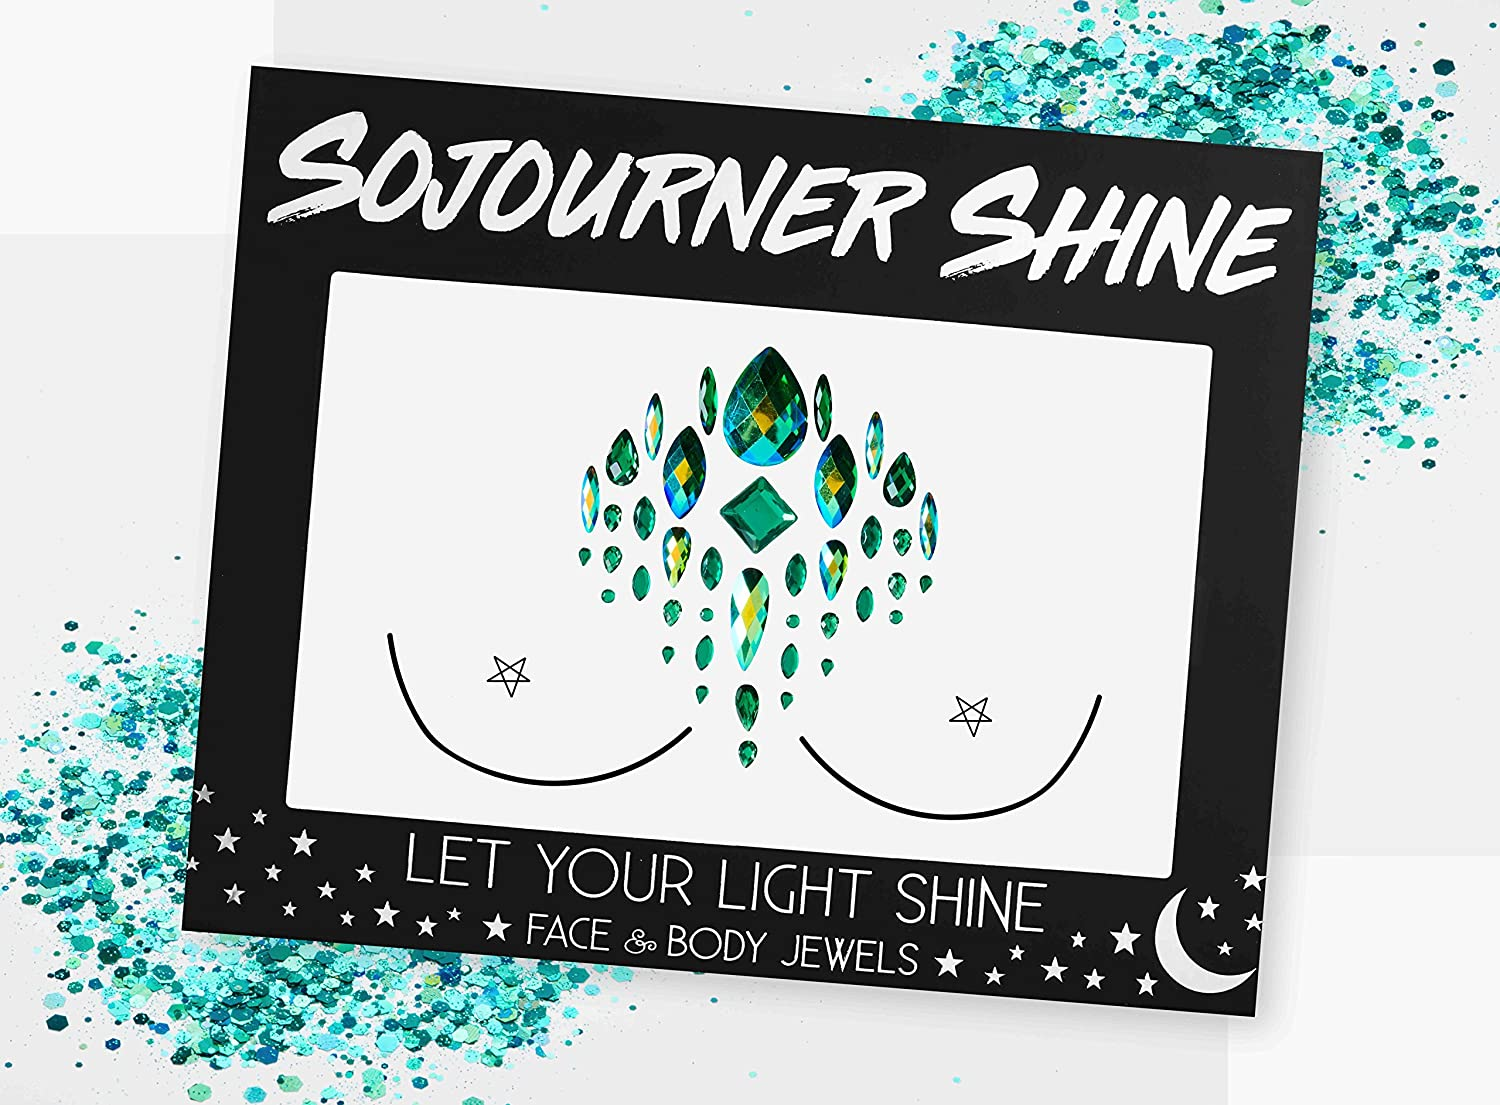 Face Jewels Glitter Gems Rhinestones – Eye Body Jewels Gems   Rhinestone Stickers   Body Glitter Festival Rave & Party Accessories by SoJourner (Sea Dragon)